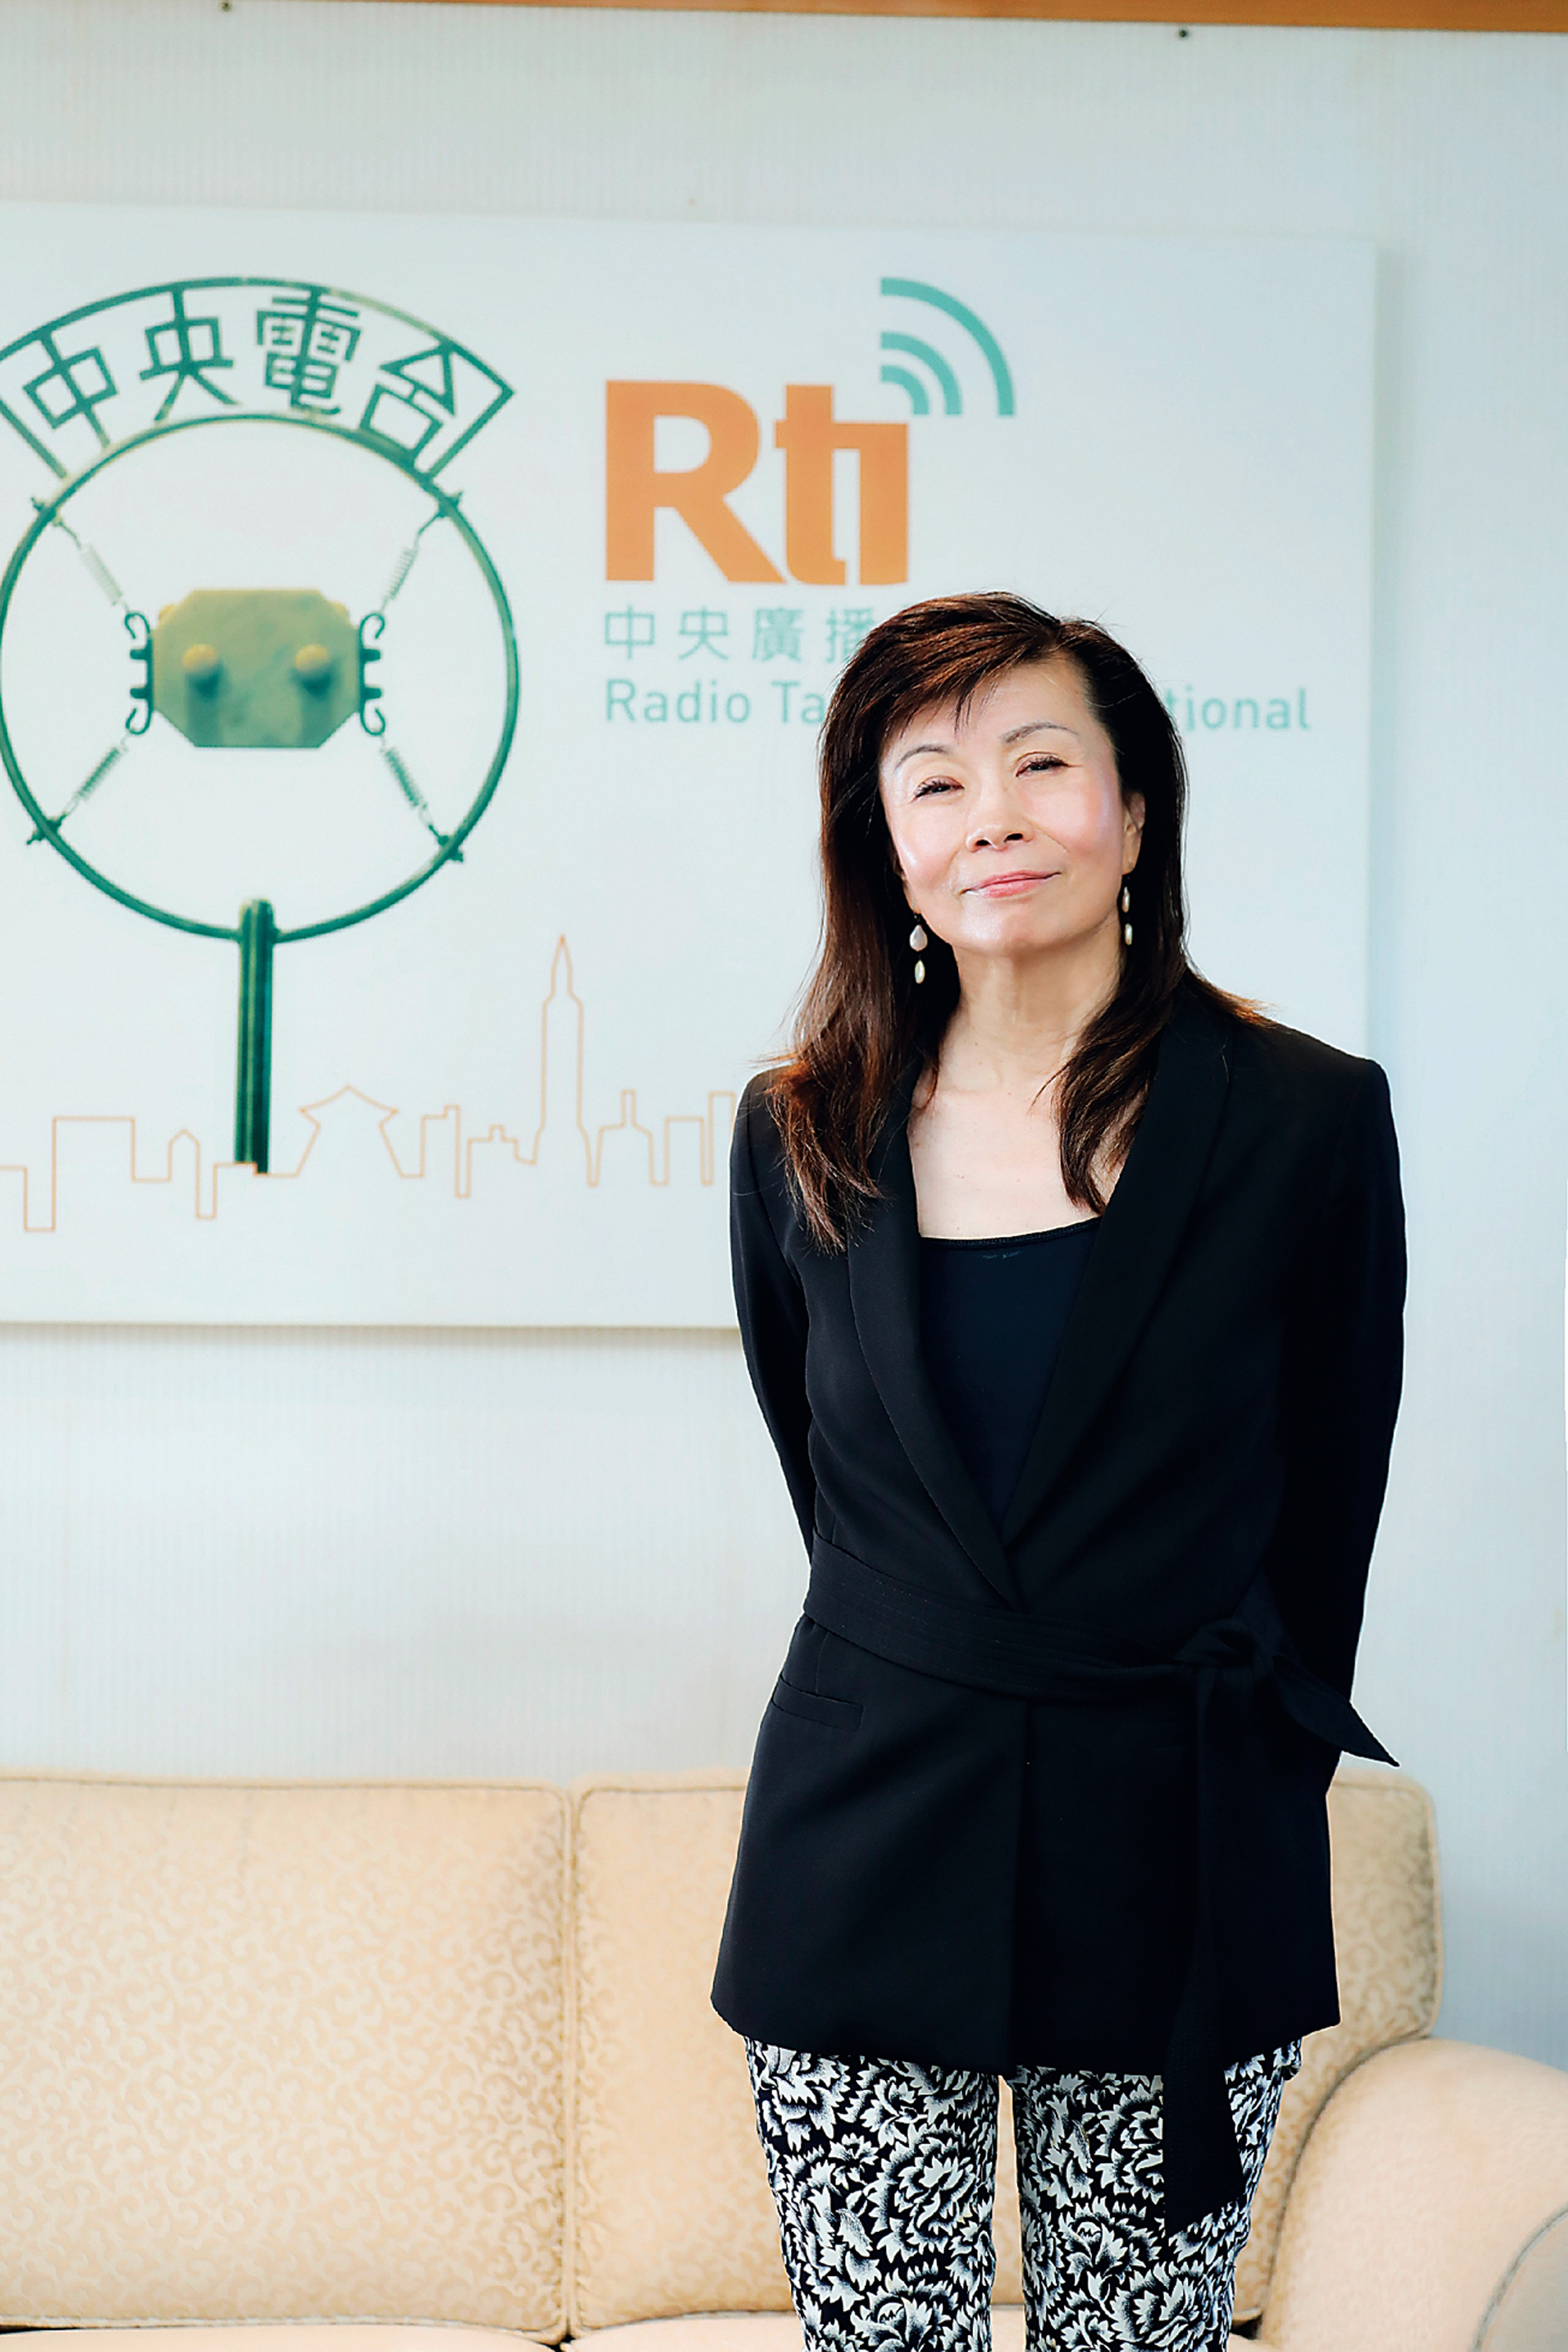 Lu Ping, RTI chairperson, hopes that RTI will continue to address serious issues of public interest in the future. (photo by Jimmy Lin)